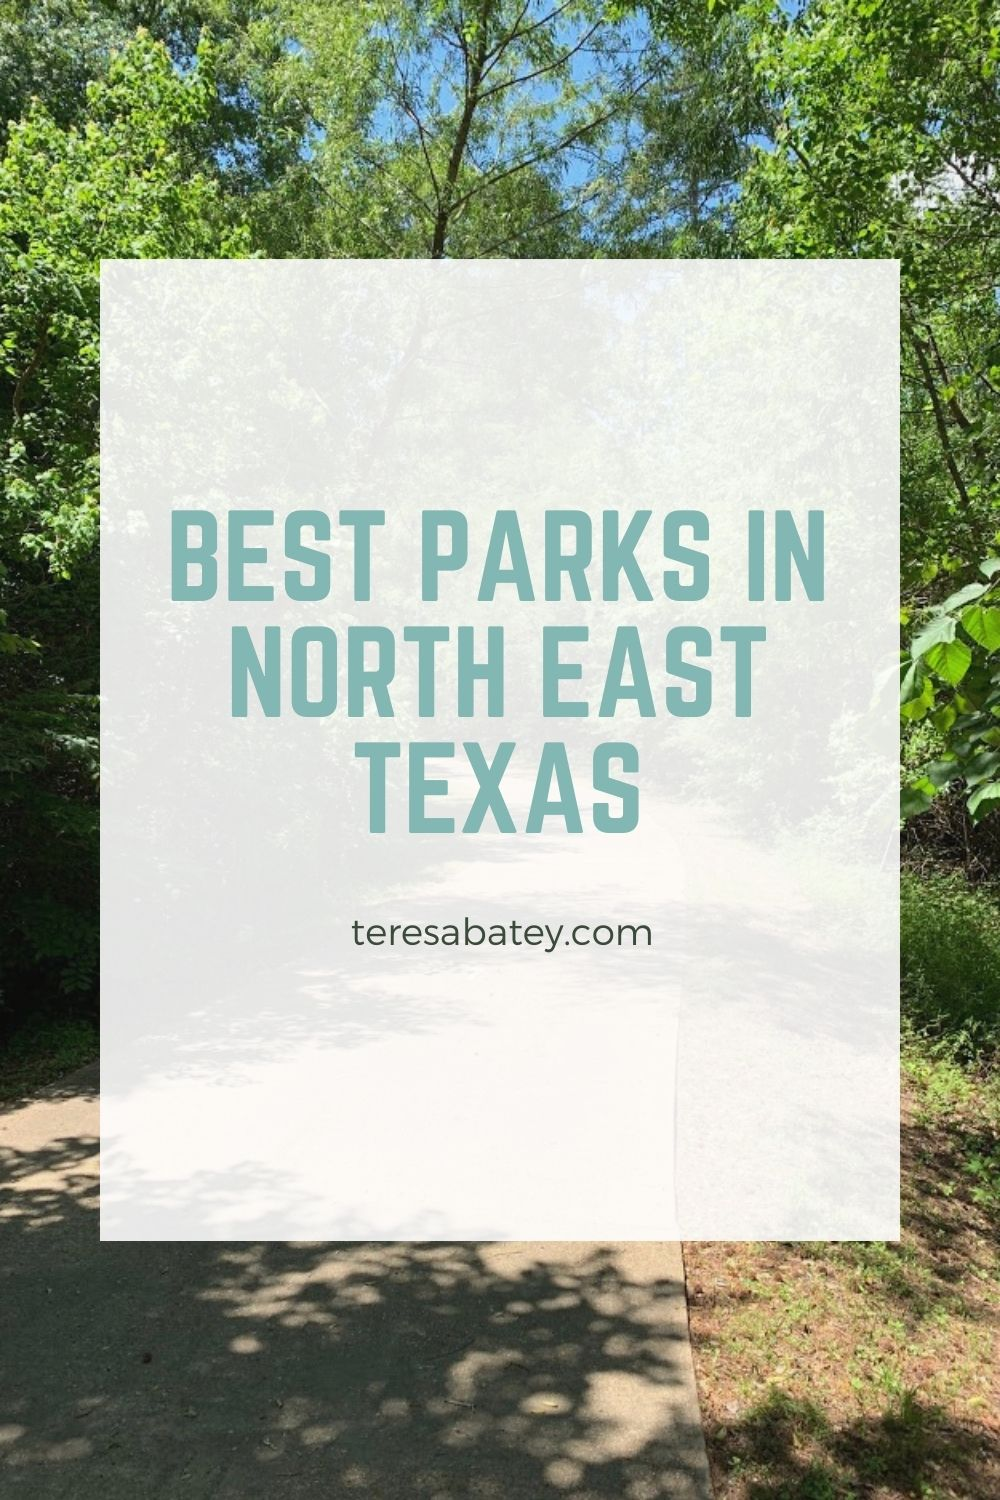 Best Parks In North East Texas